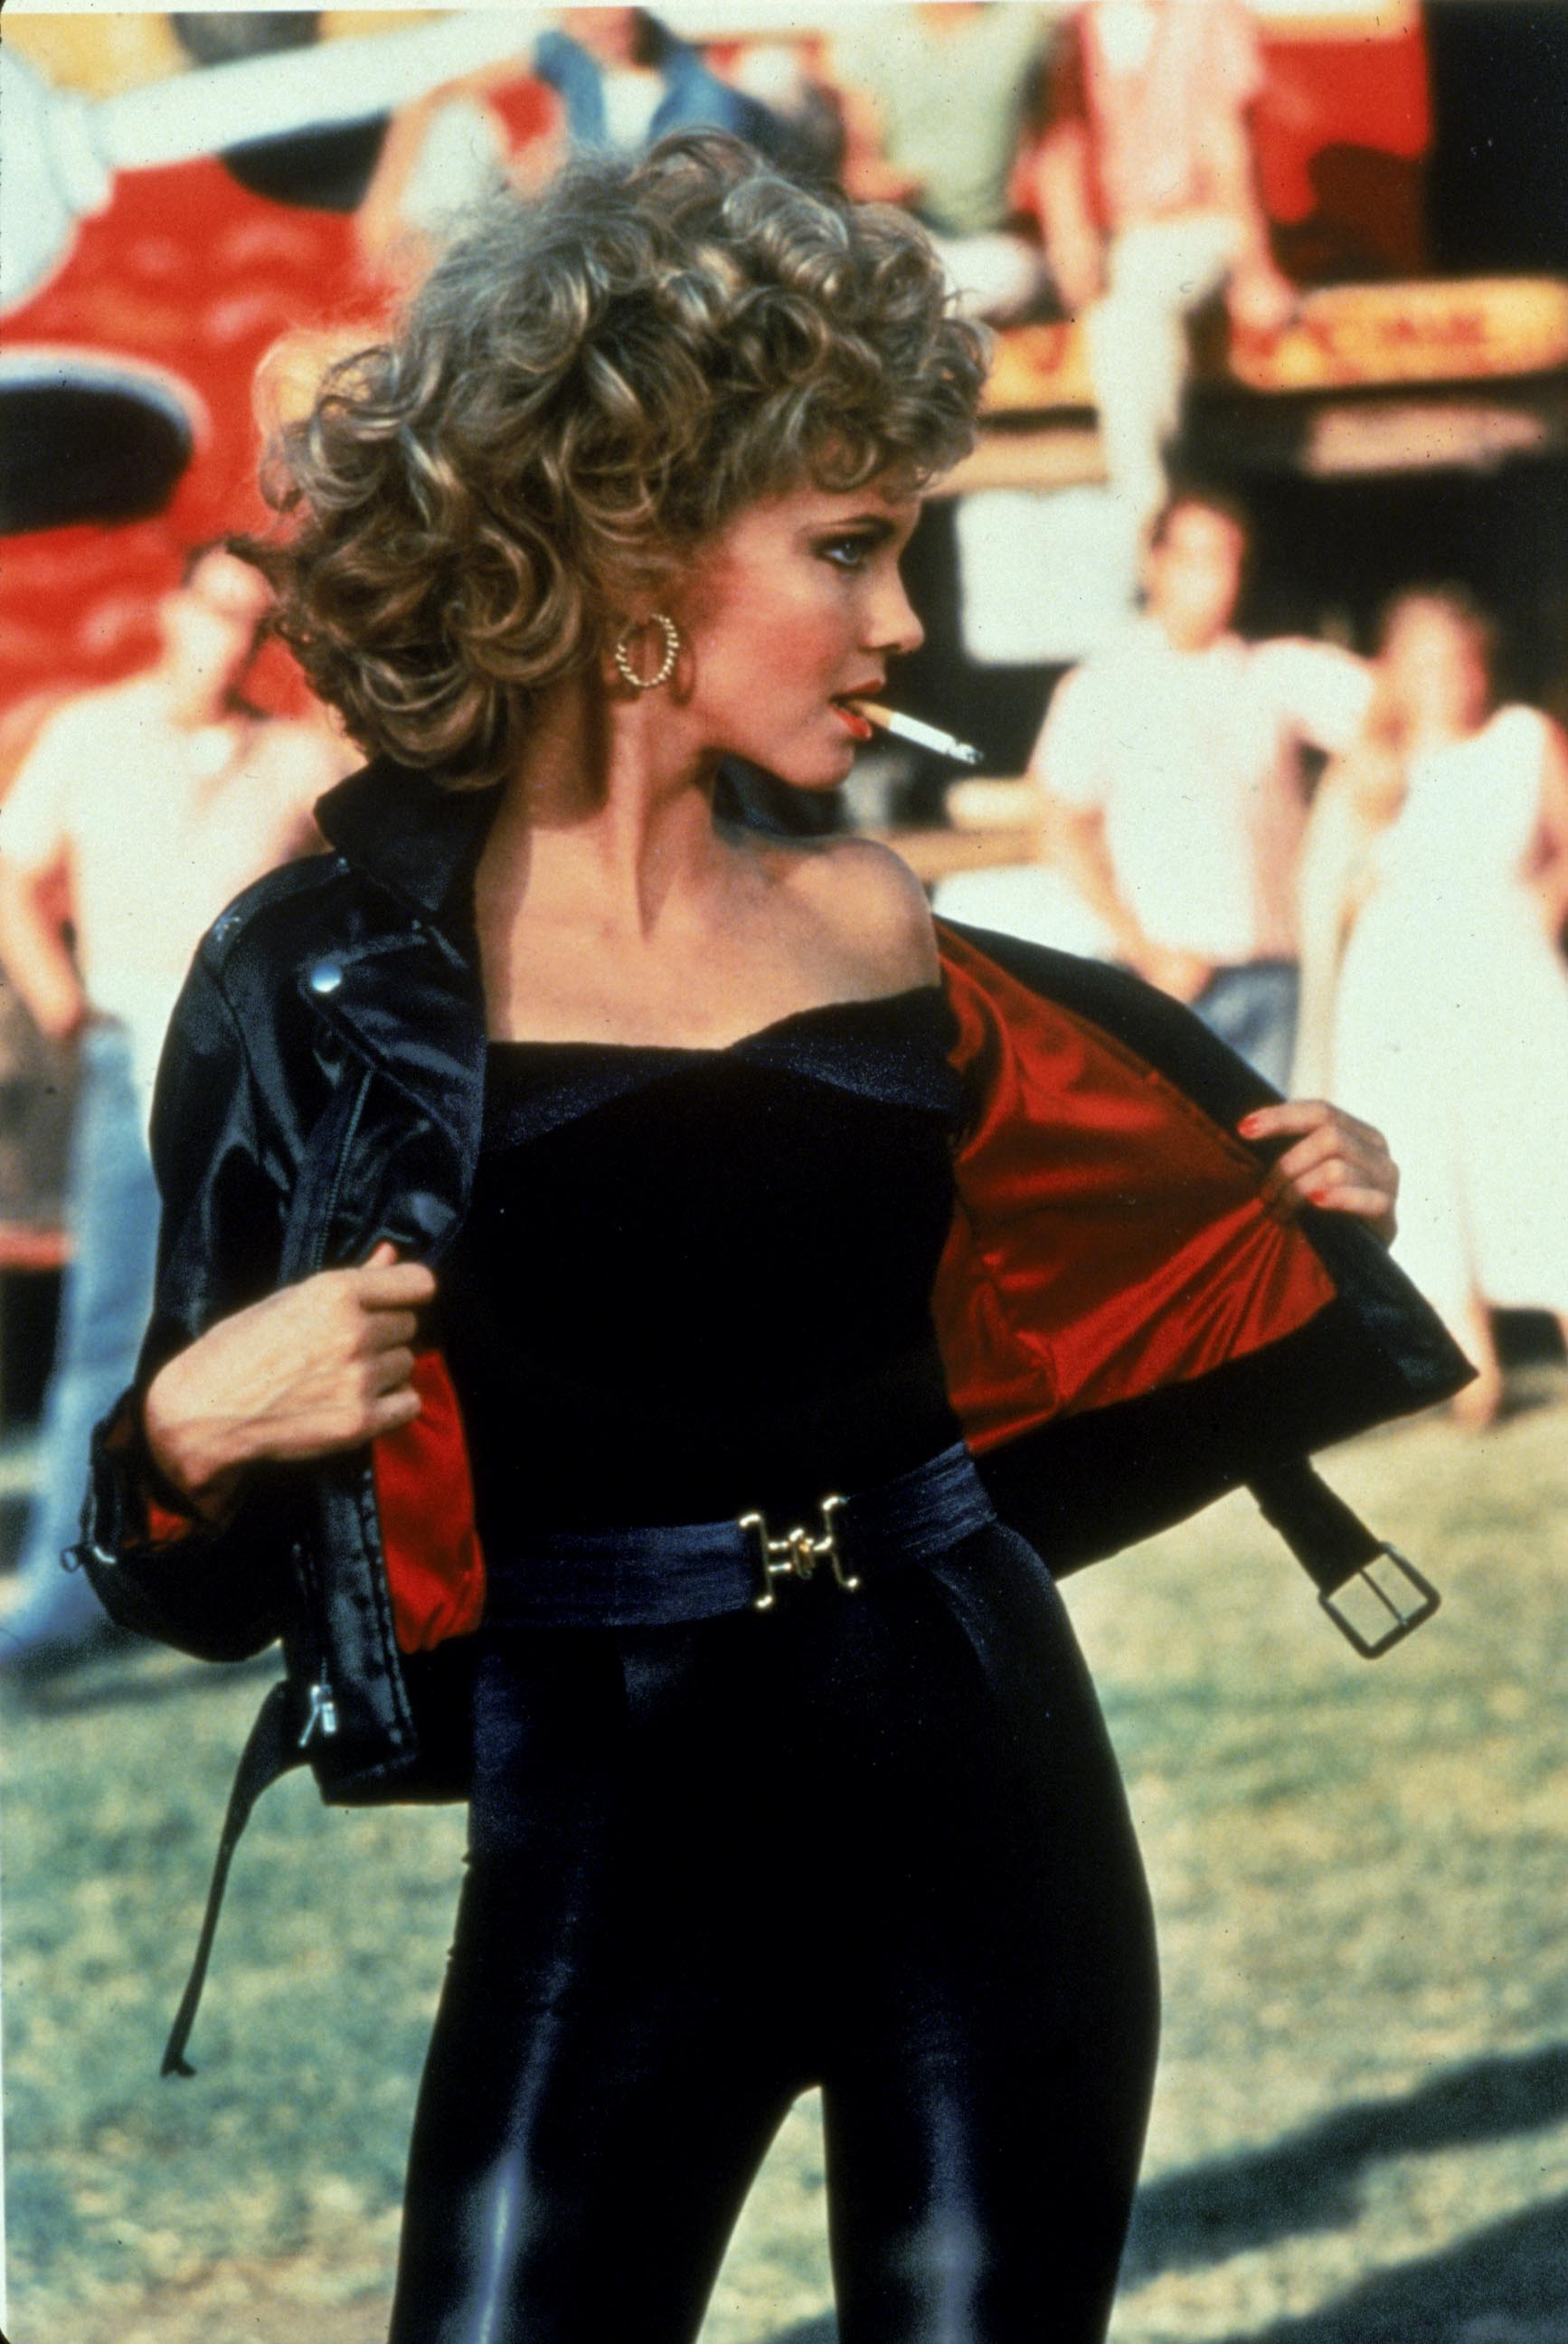 http://www.usatoday.com/picture-gallery/life/people/2018/06/03/grease ...